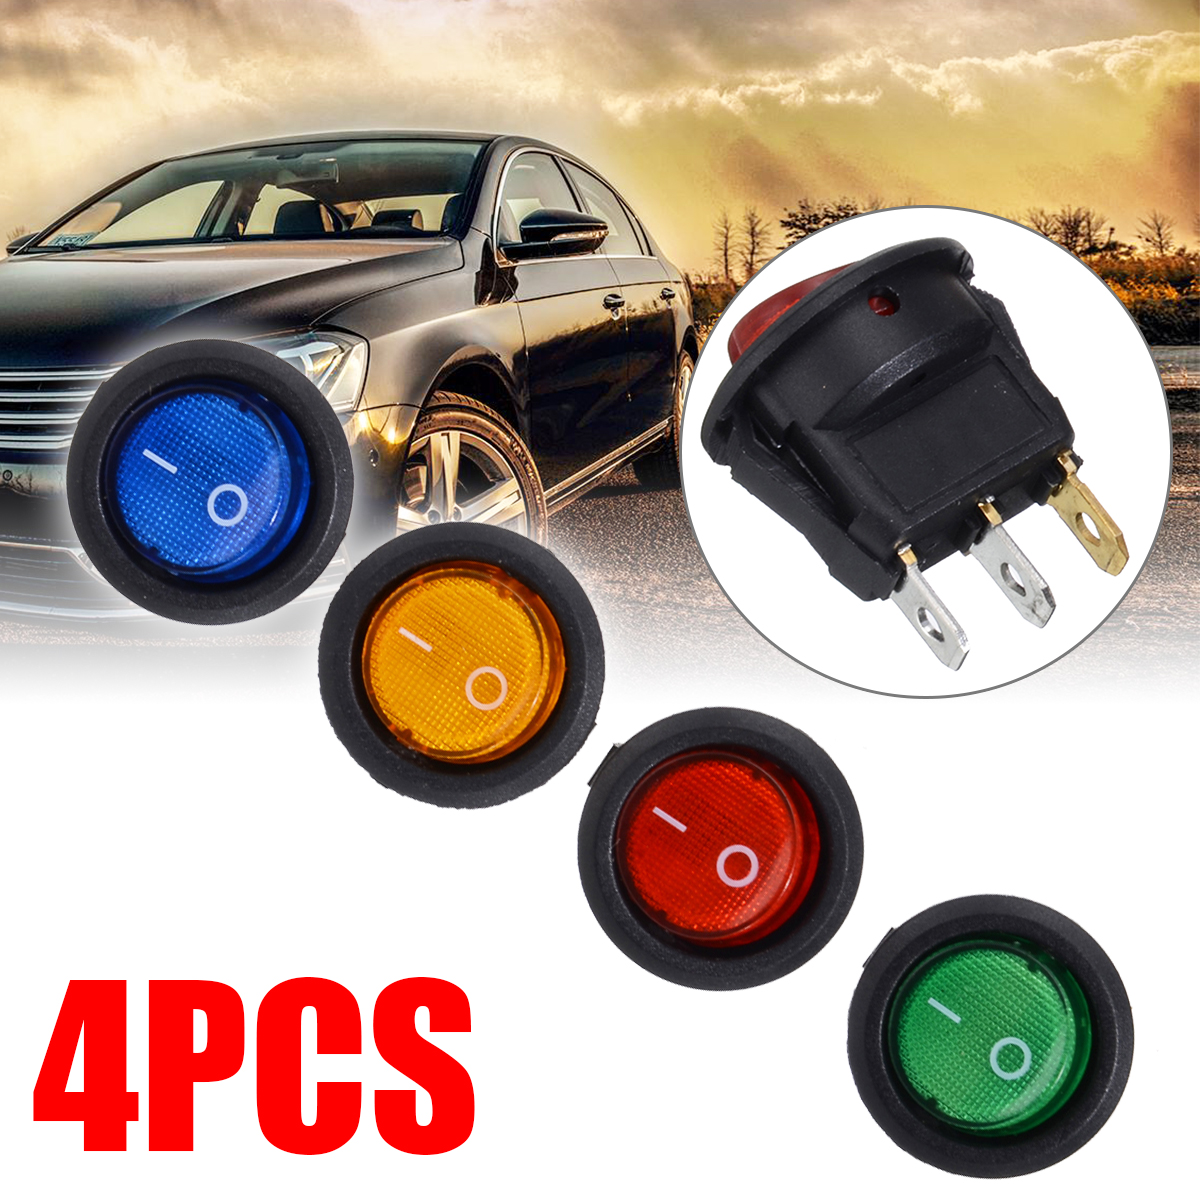 4X Round Car On Off LED Rocker Switch 12V 16A Auto Boat Toggle Switches SPST Red/Blue/Green/Yellow Dot